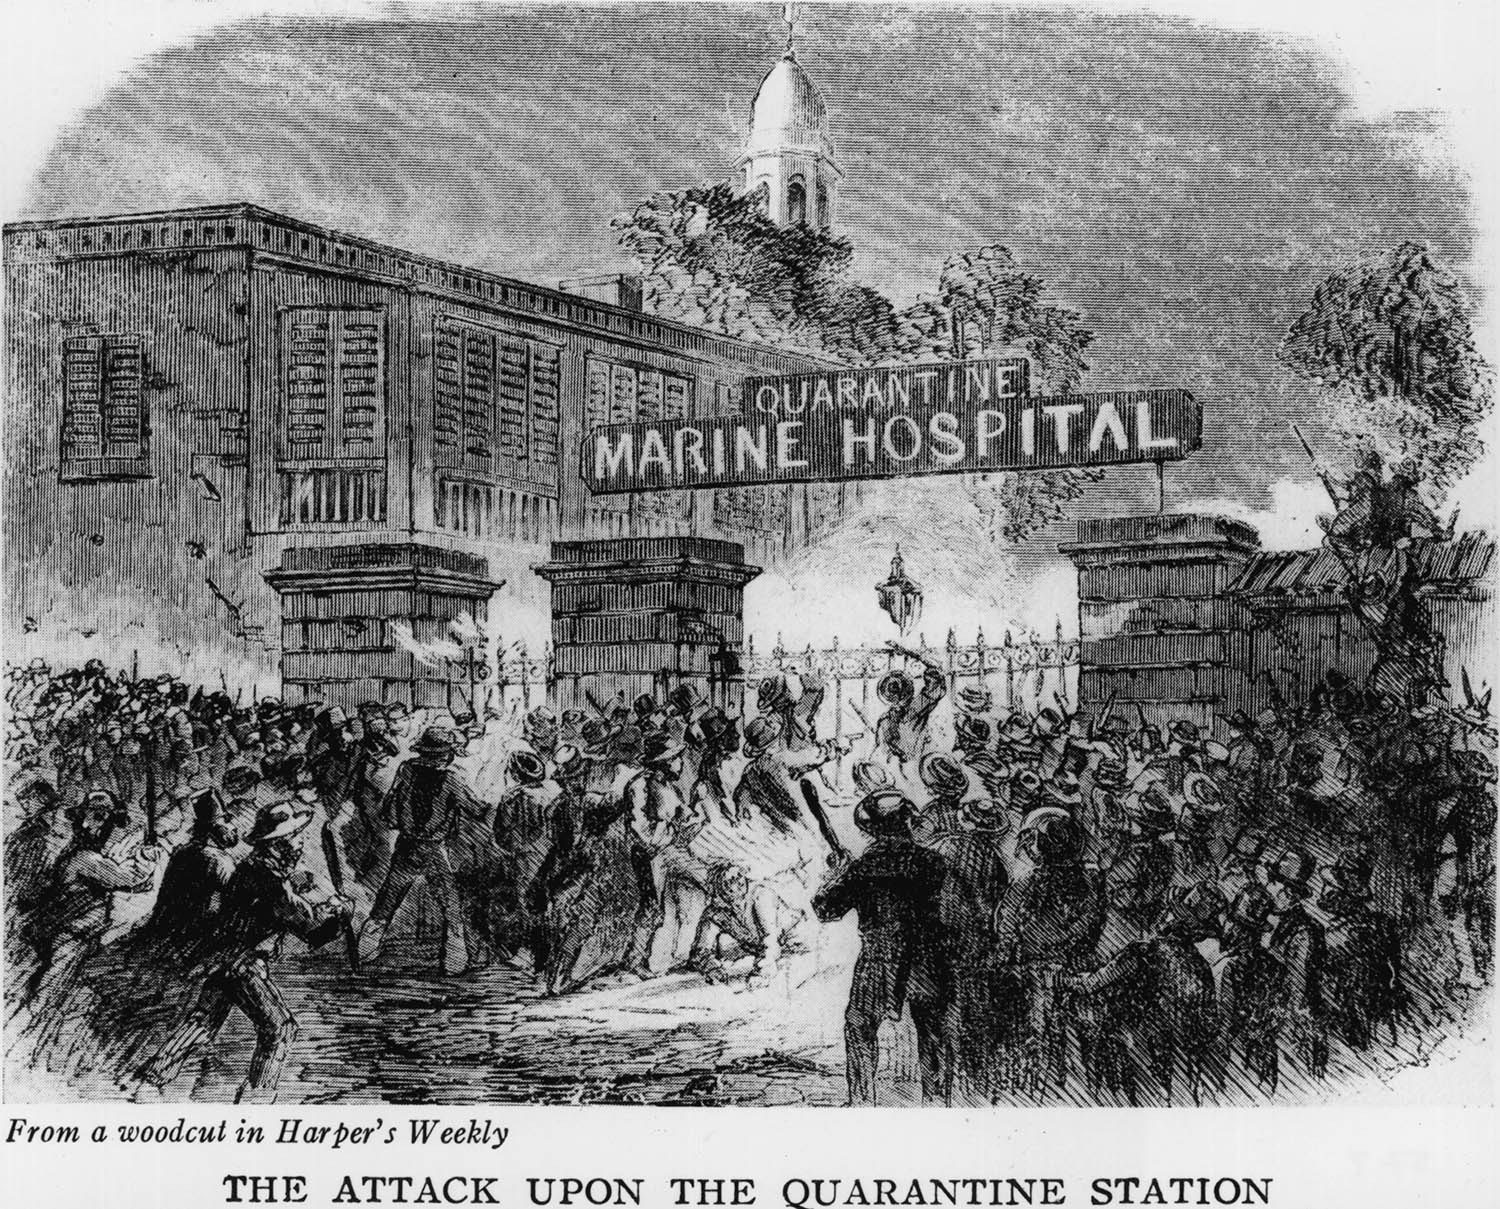 A woodcut depicts a mob attacking the Quarantine Marine Hospital in New York in 1858 because they believed that its use was responsible for the numerous yellow fever epidemics.